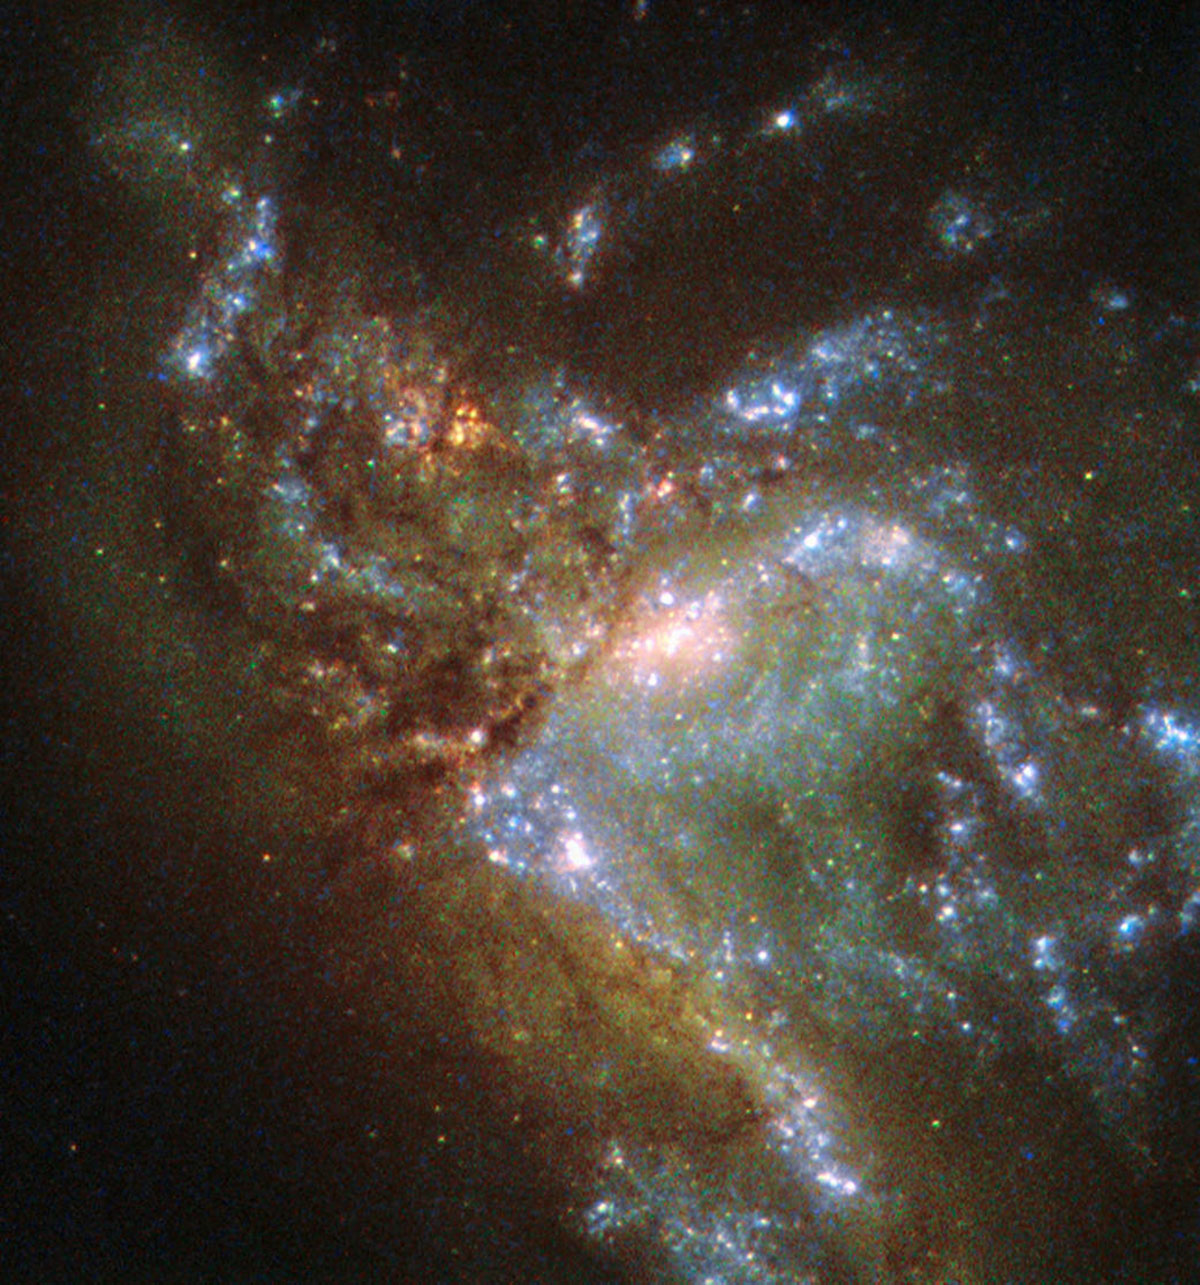 The galaxy NGC 6052, located around 230 million light-years away in the constellation of Hercules (Picture ESA/Hubble)